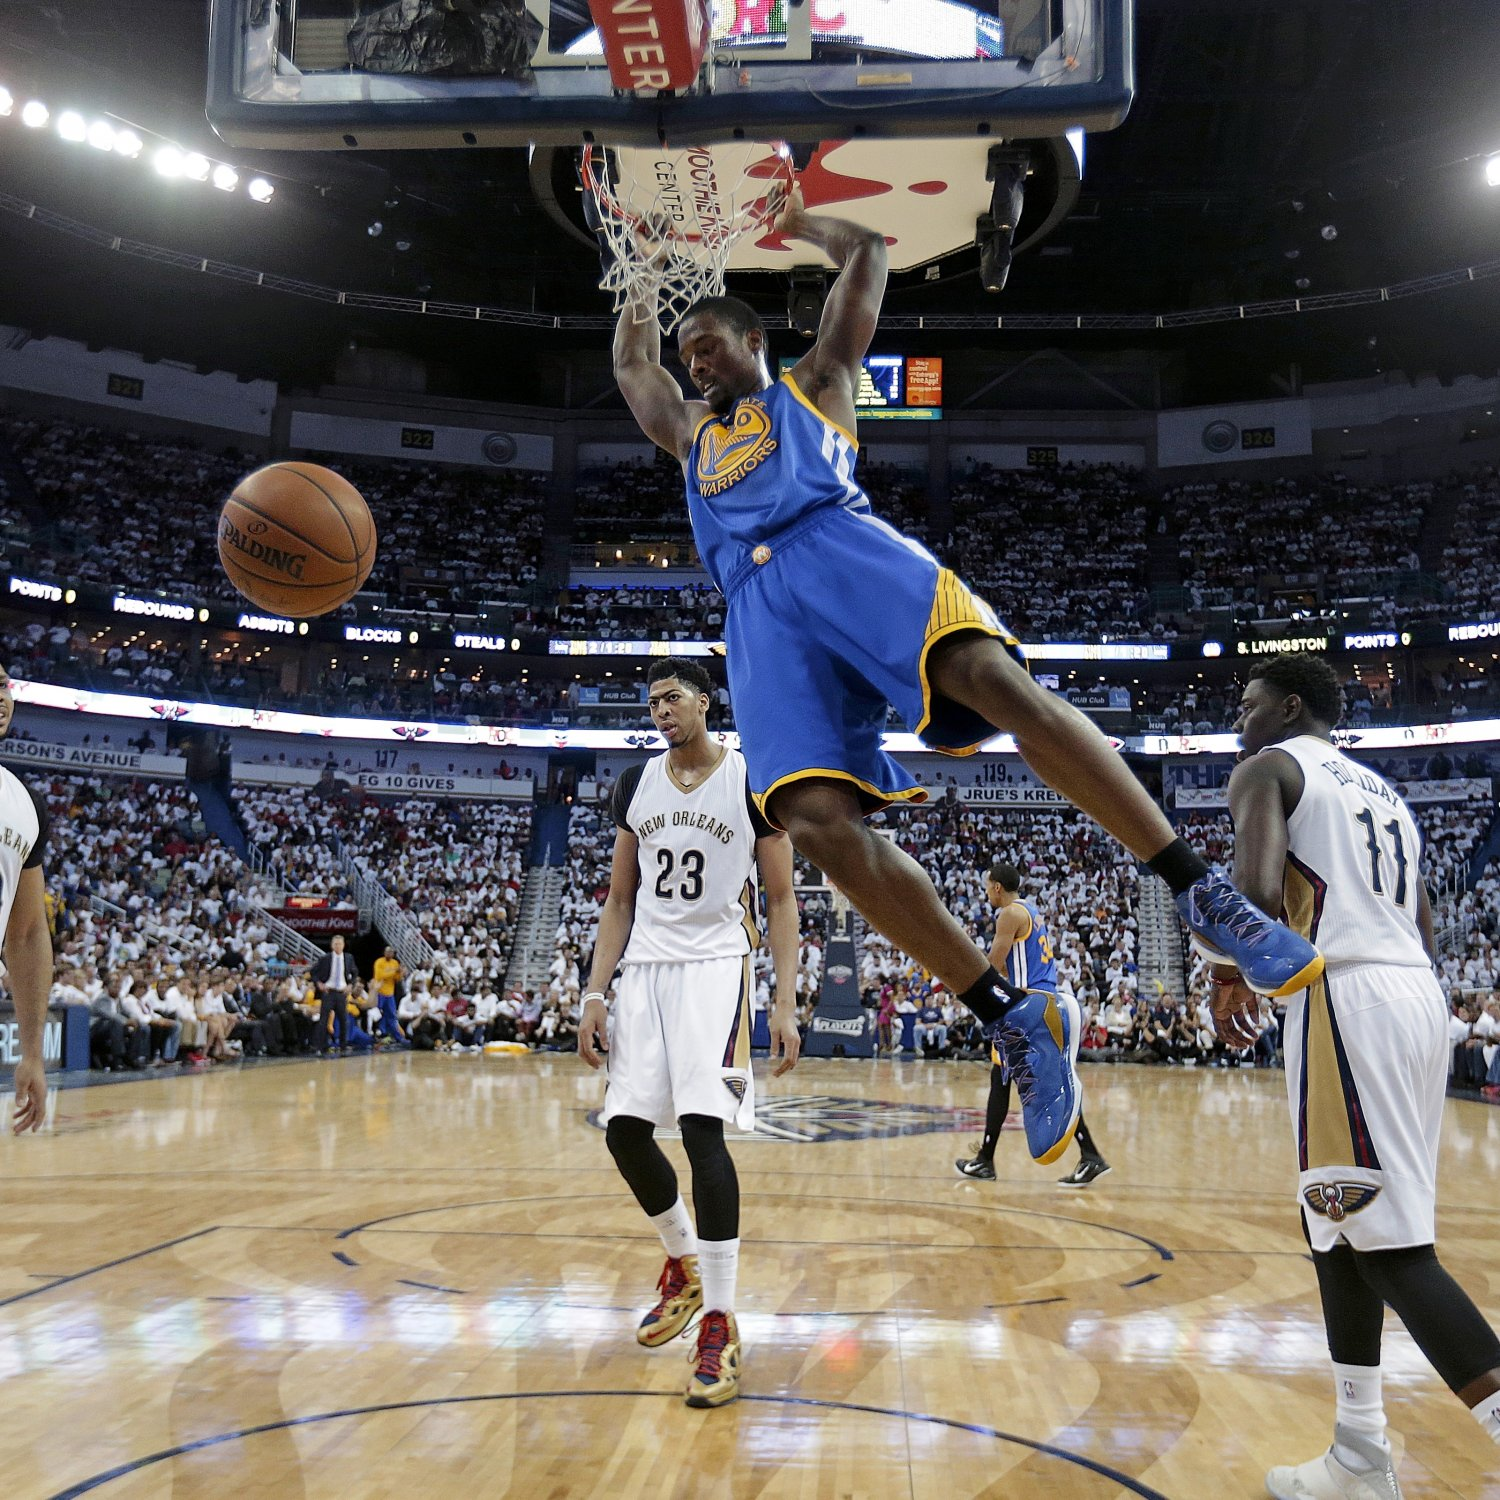 Warriors Vs Pelicans Game 3 Live Stream Free: Warriors Vs. Pelicans: Game 4 Video Highlights And Recap